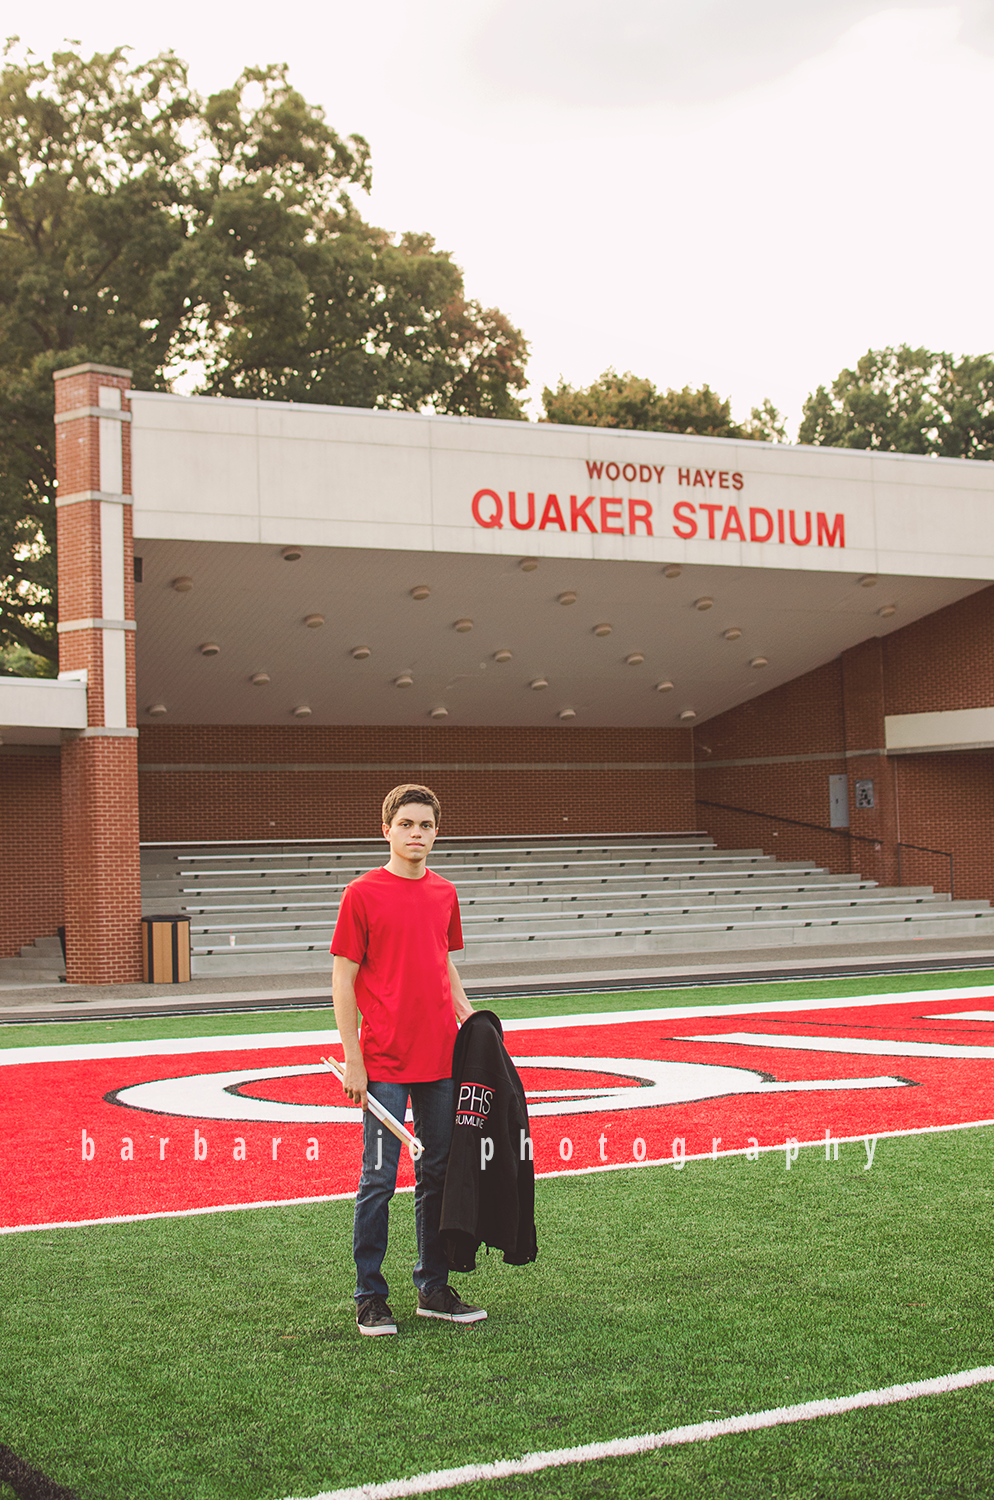 bjp-senior-portraits-guy-photographer-dover-nphs-ohio-drum-band-rock-quaker-tyler12.png